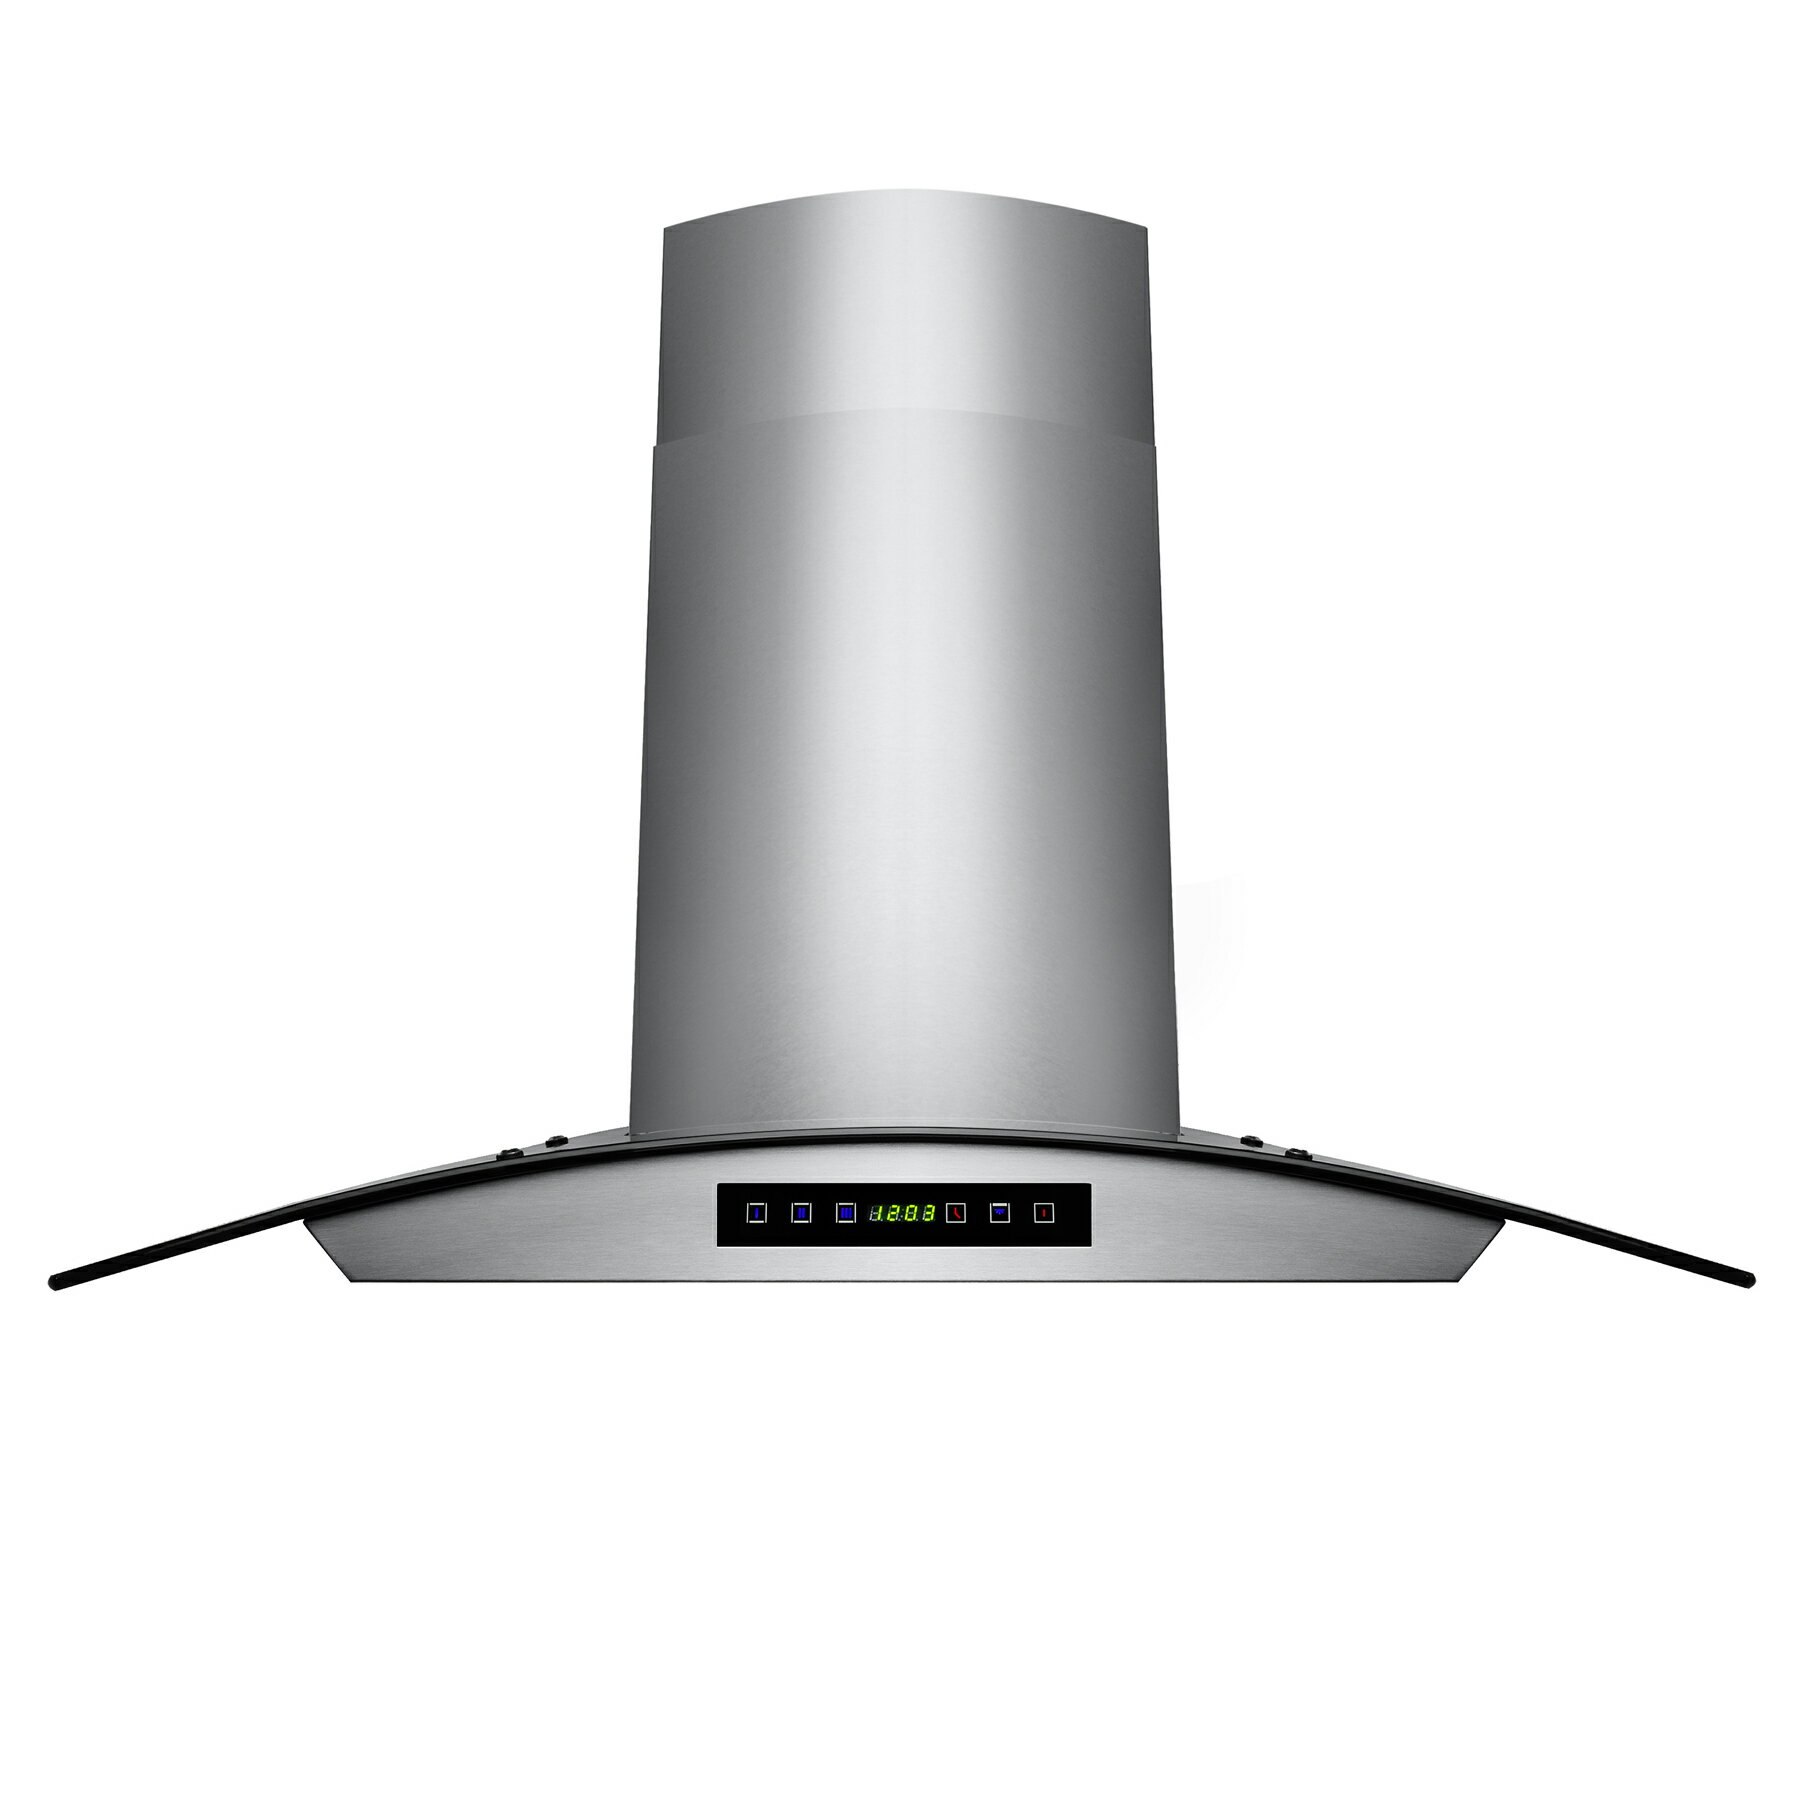 "AKDY New 36"" Wall Mount Stainless Steel Glass Range Hood GV-H703C-B90 Vents 380 CFM 2"